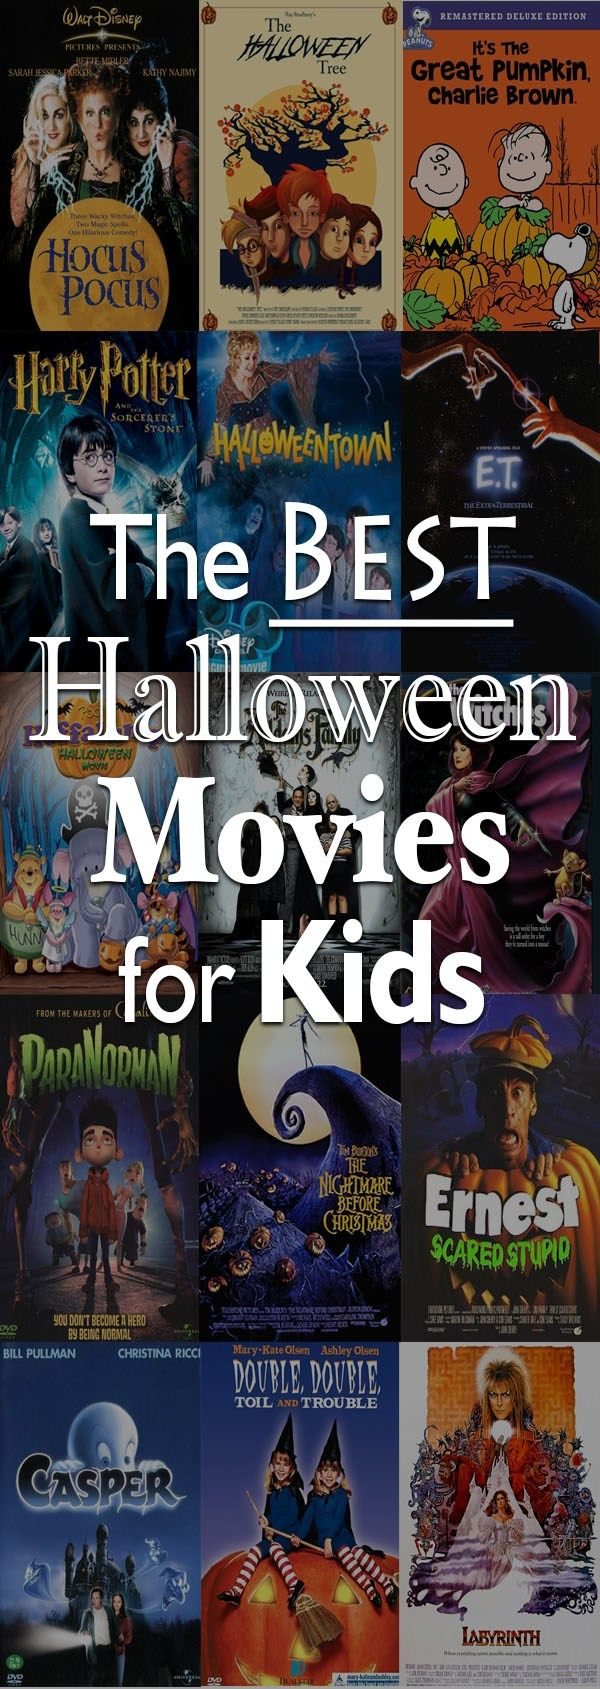 halloween movie bowling green ky